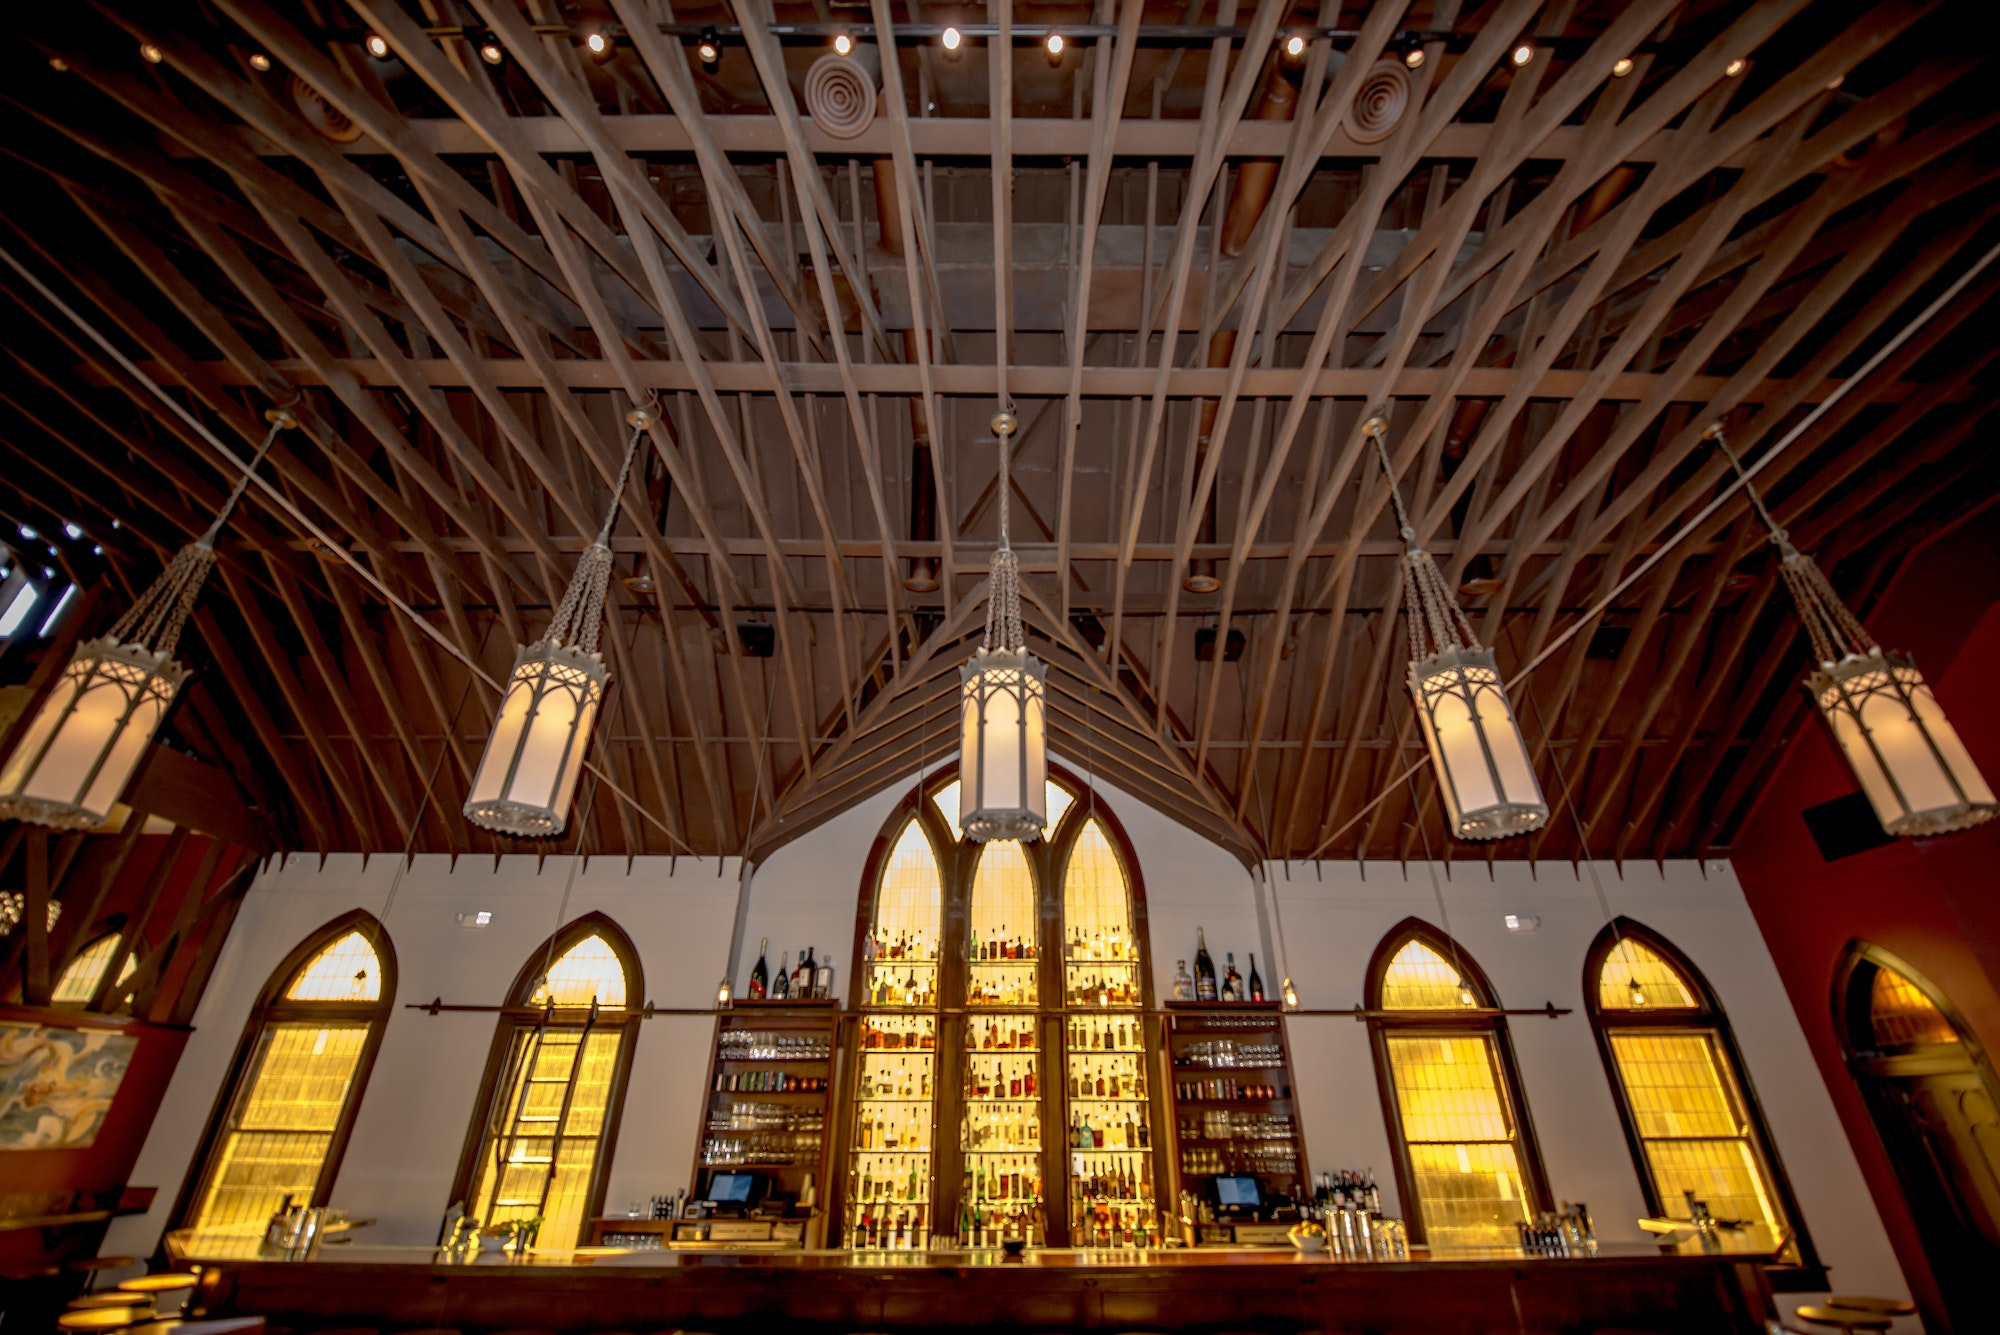 The ceiling of this 100-year-old Lutheran church-turned-restaurant was modeled after a ship's hull.